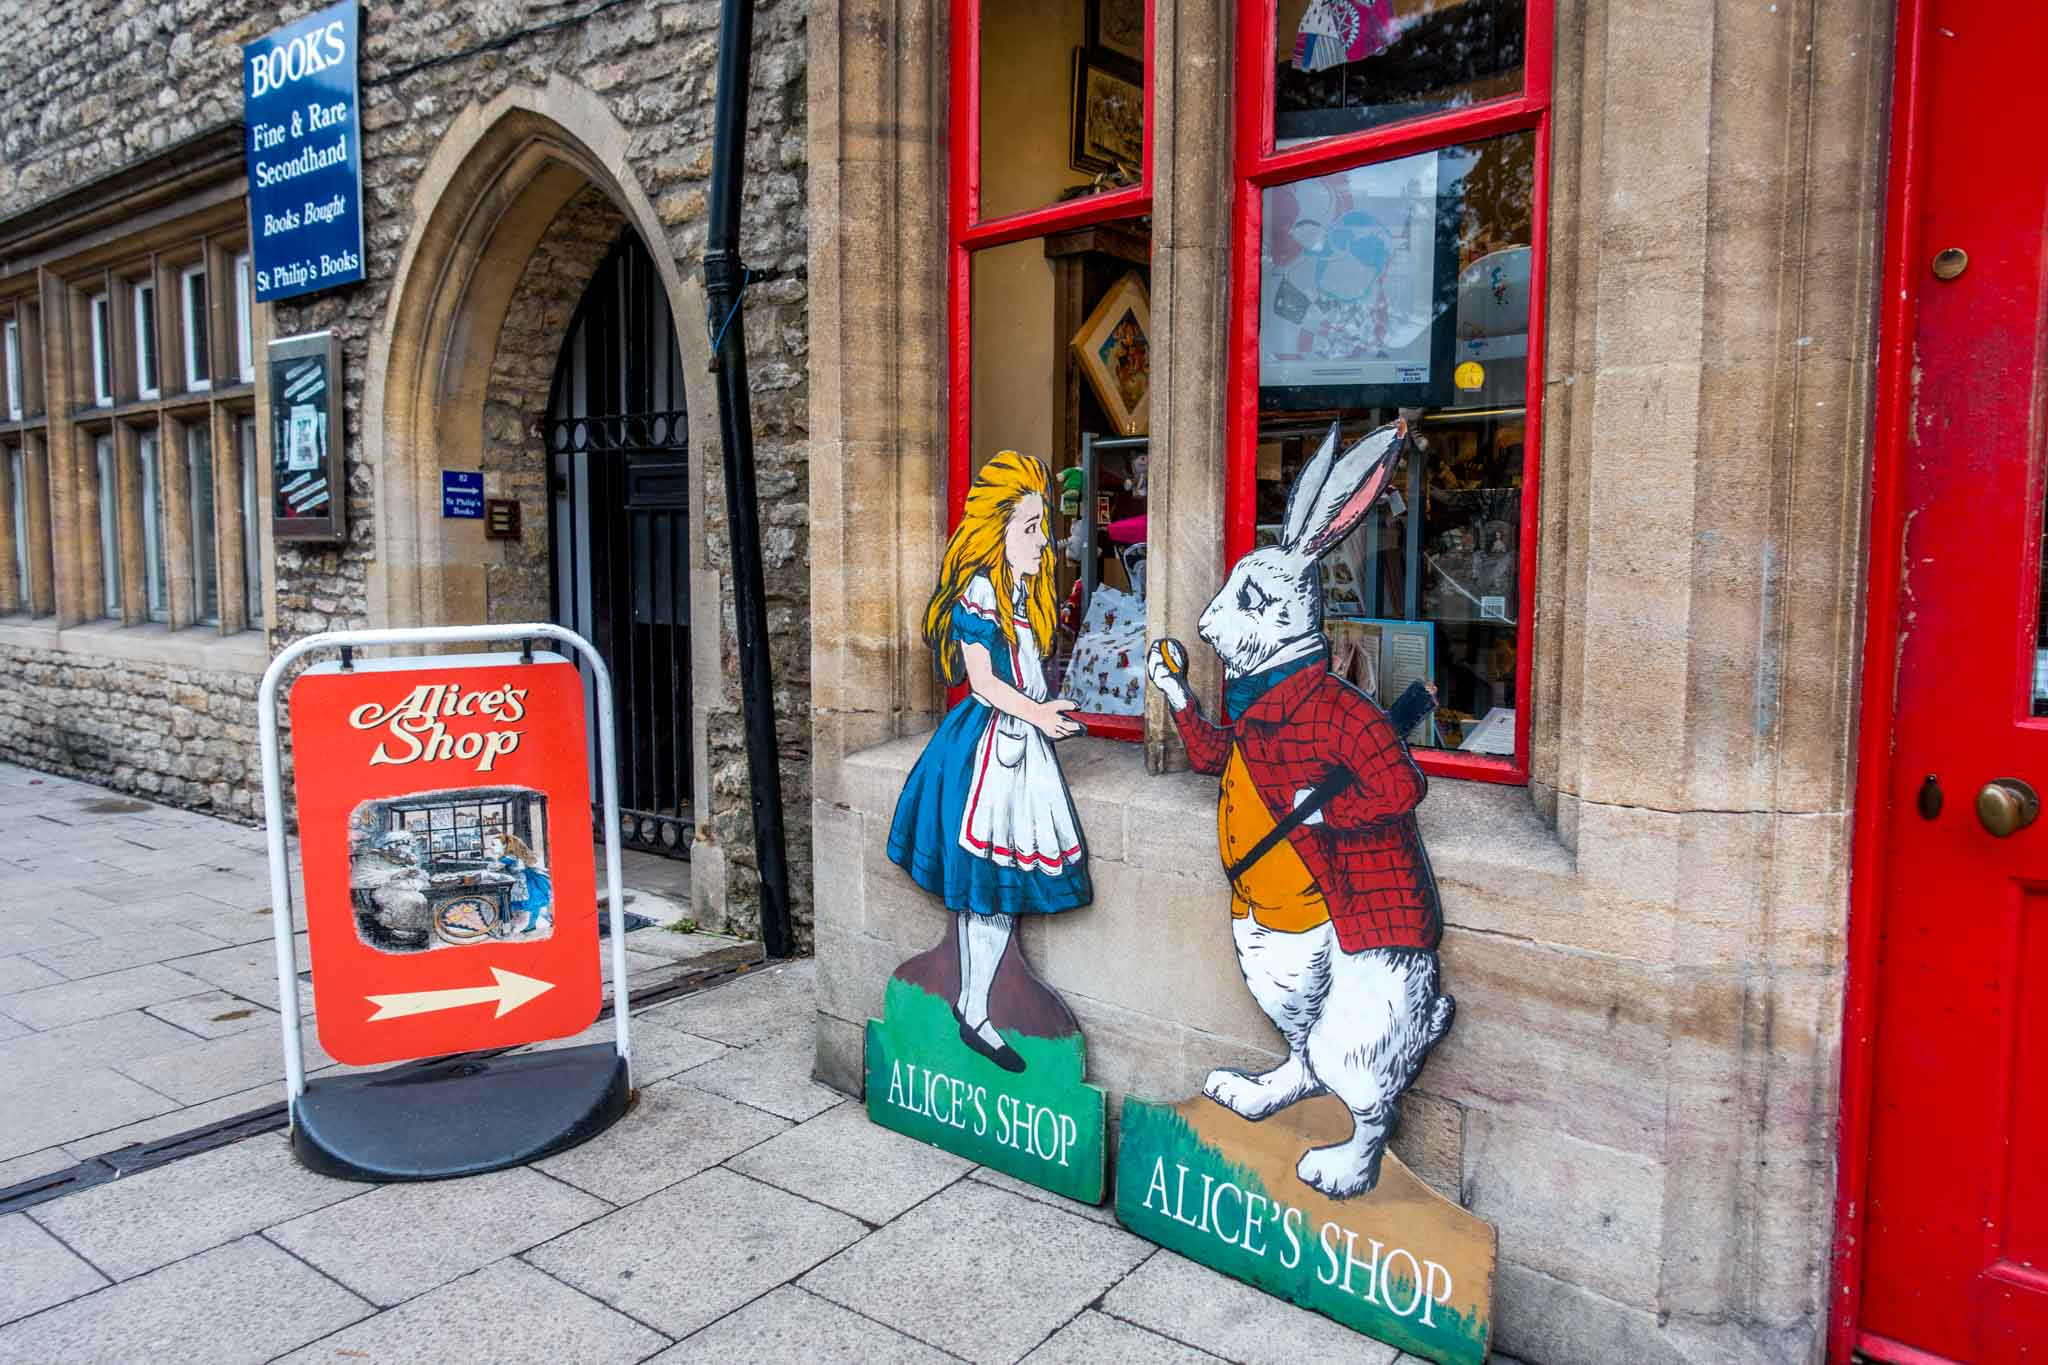 The Alice Shop is one of the top Oxford places to visit for lovers of Alice in Wonderland